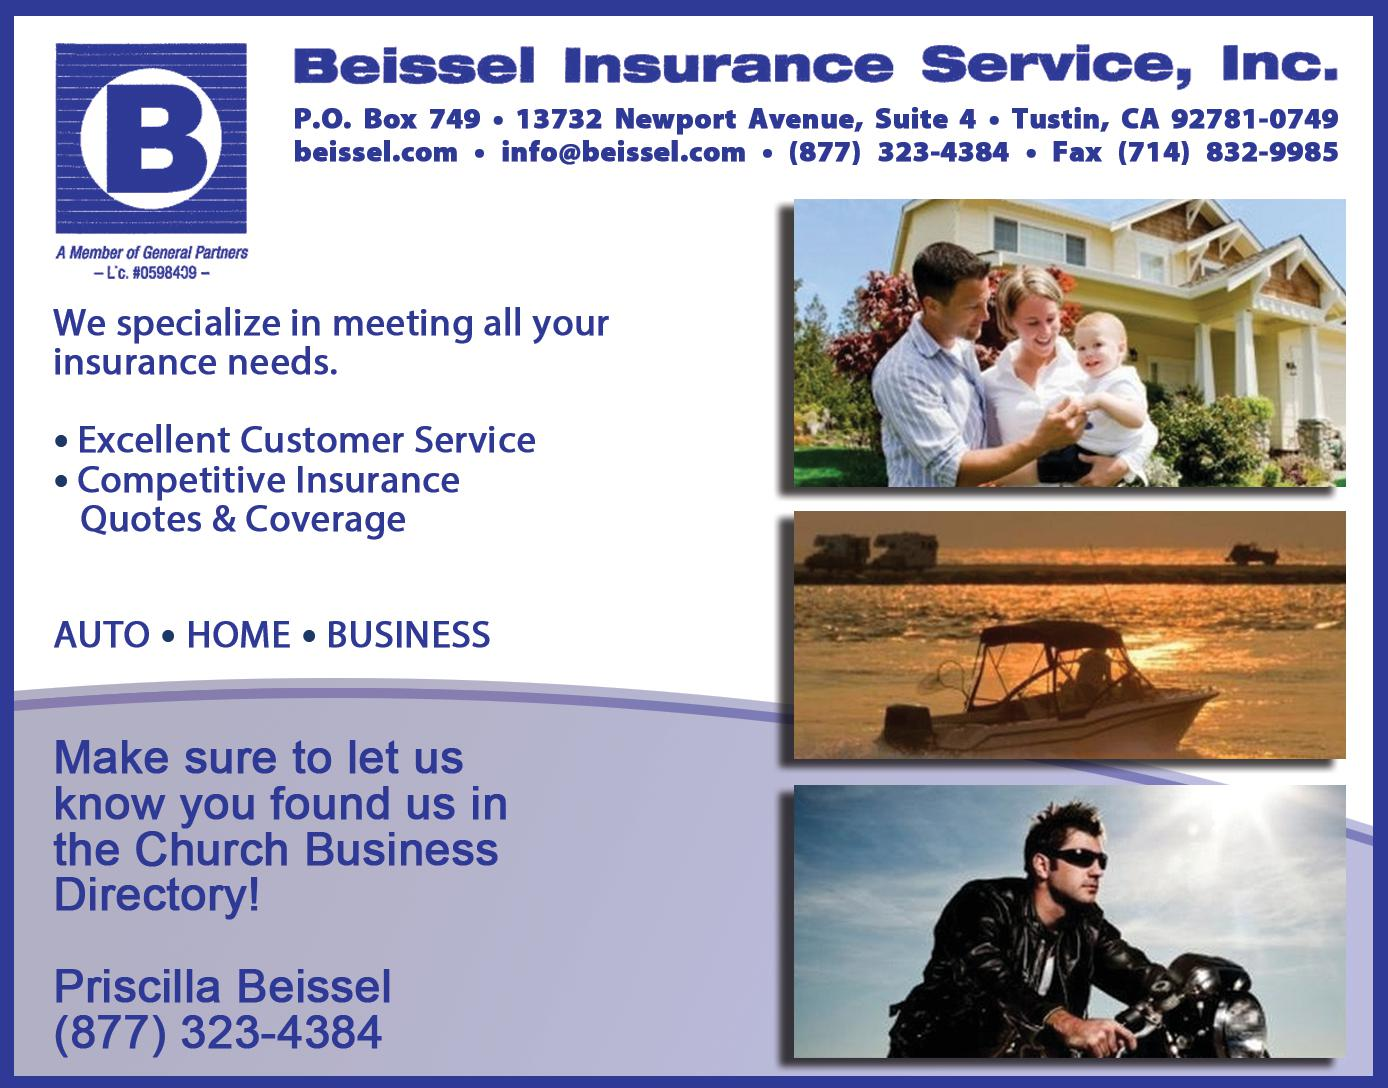 Beissel Insurance Services, Inc.